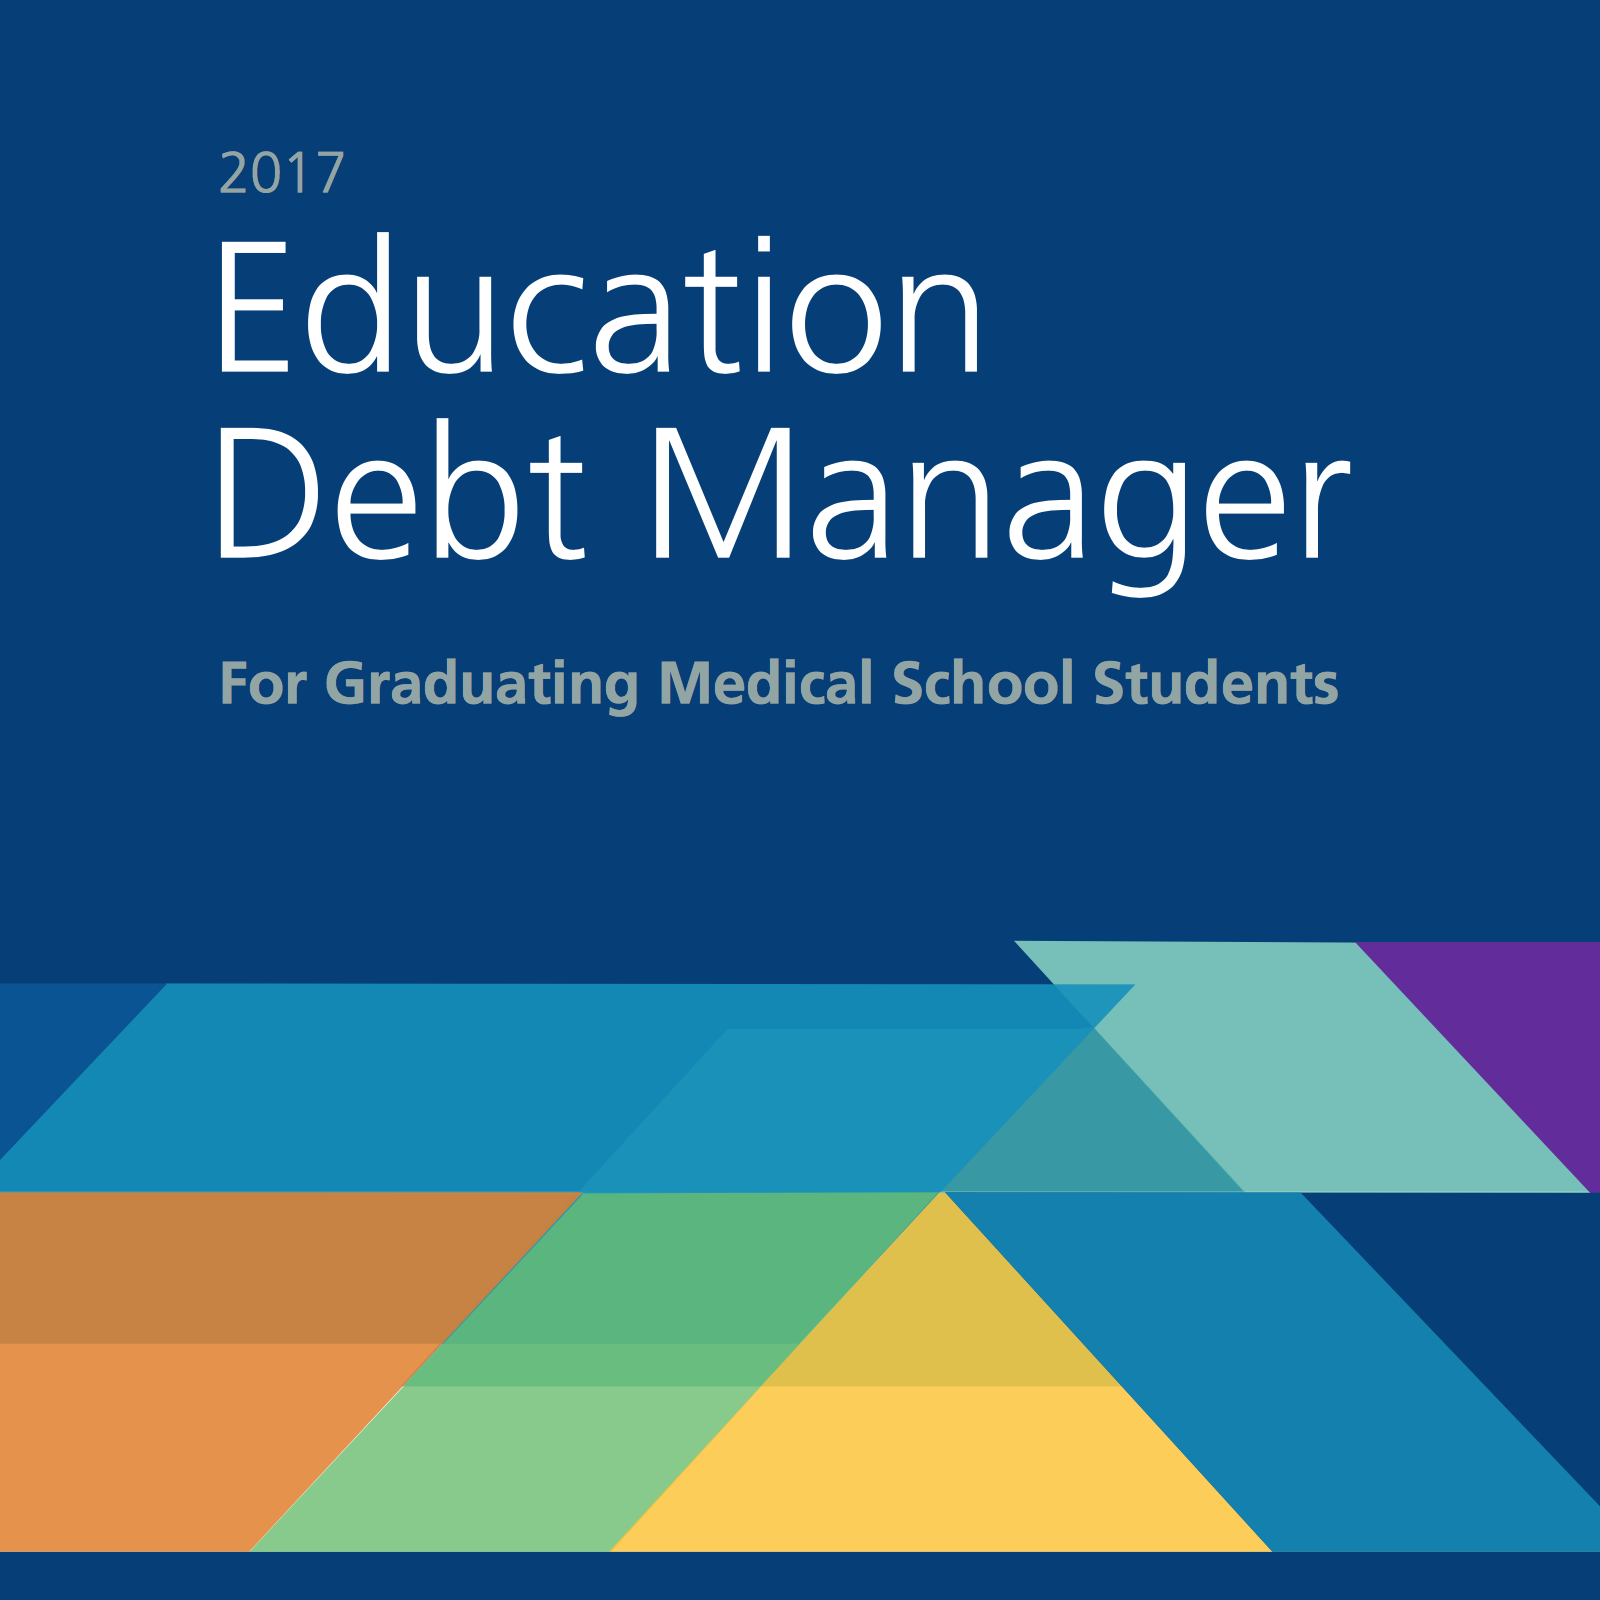 Education Debt Manager for Graduating Medical School Students--2017.jpg